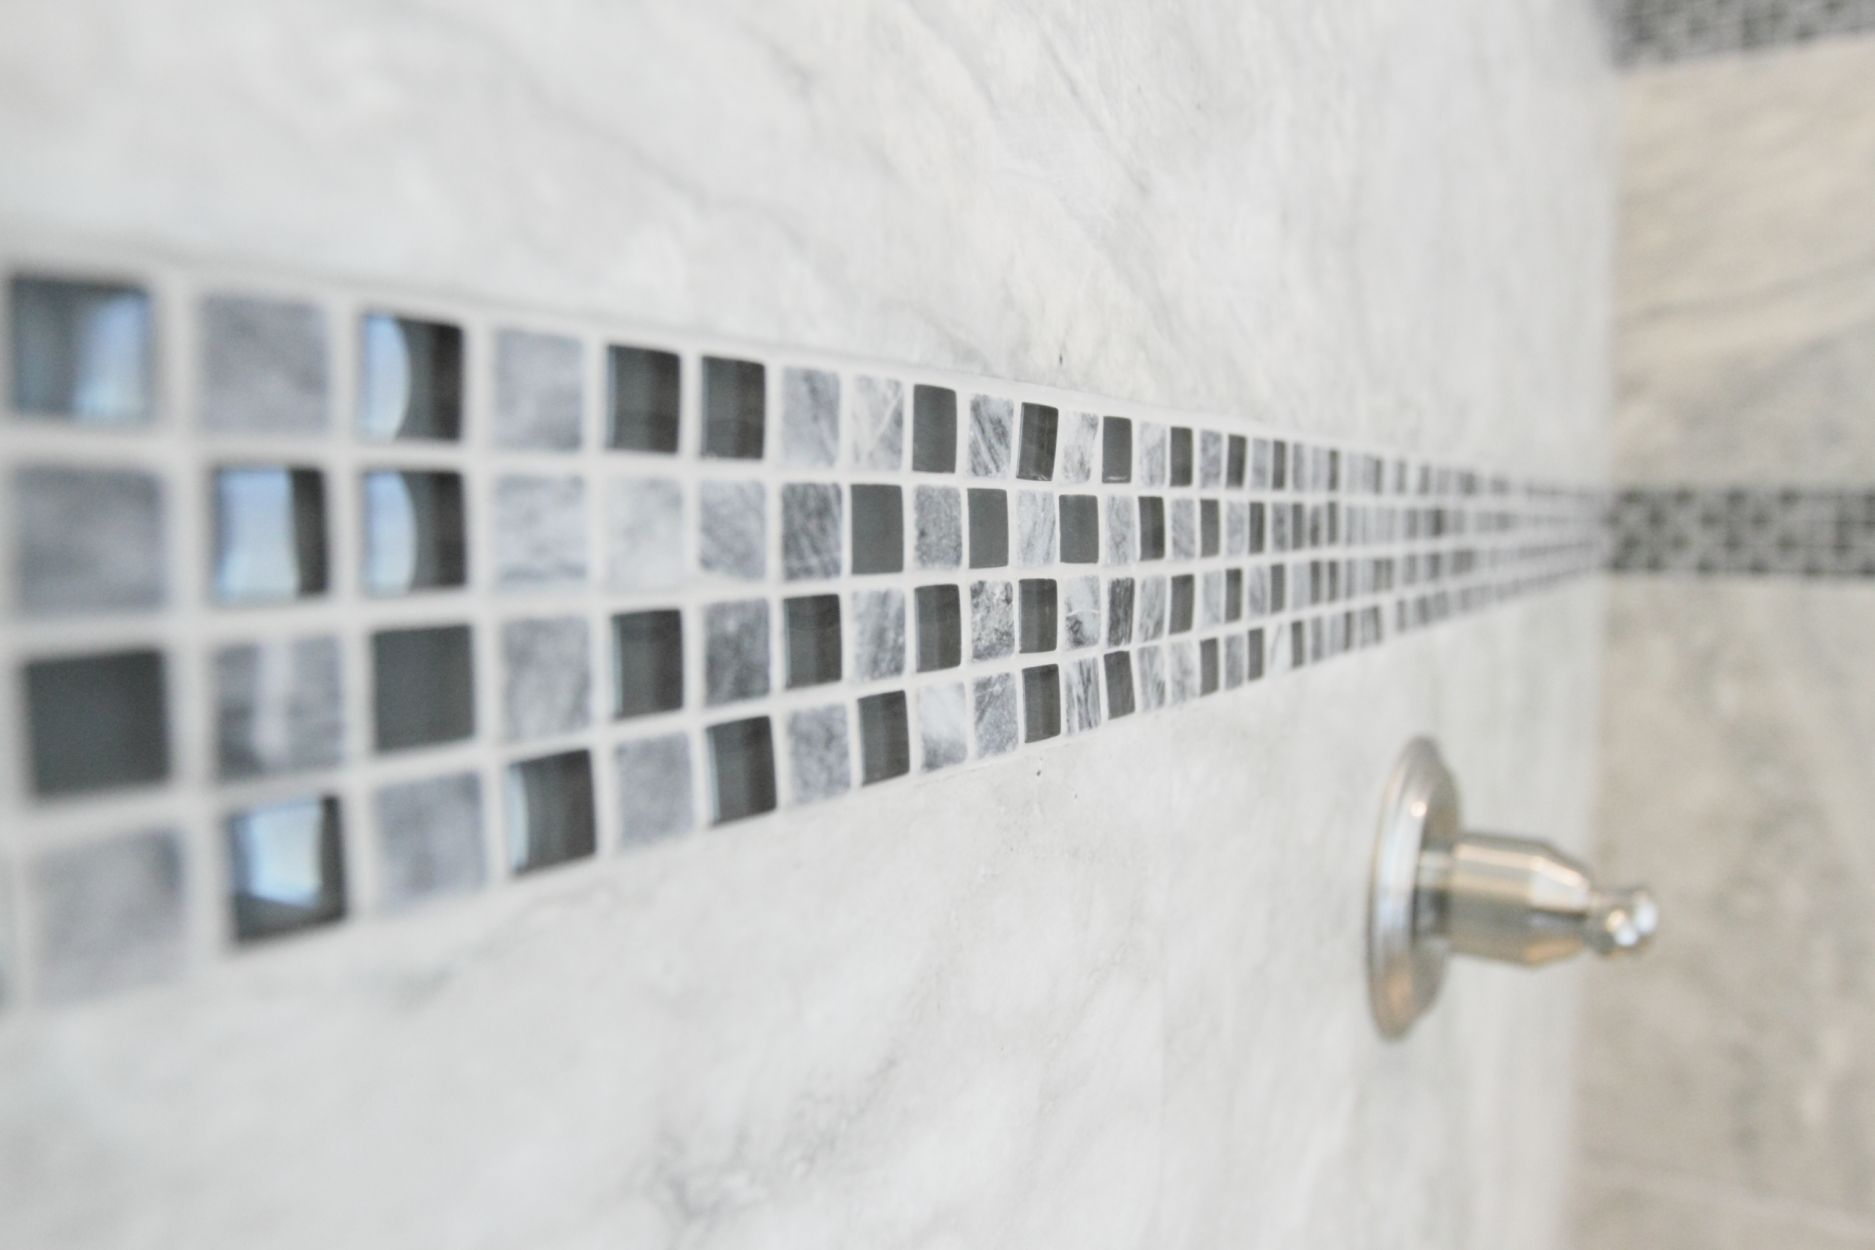 Magnificent 12 X 12 Ceramic Tile Thin 2 X 4 Ceiling Tile Shaped 2 X 8 Glass Subway Tile 24 X 24 Ceramic Tile Youthful 24X24 Ceramic Tile Orange24X48 Ceiling Tiles L \u0026 M Interior Design. Shower Accent Tile Band And Tile Wall. Water ..